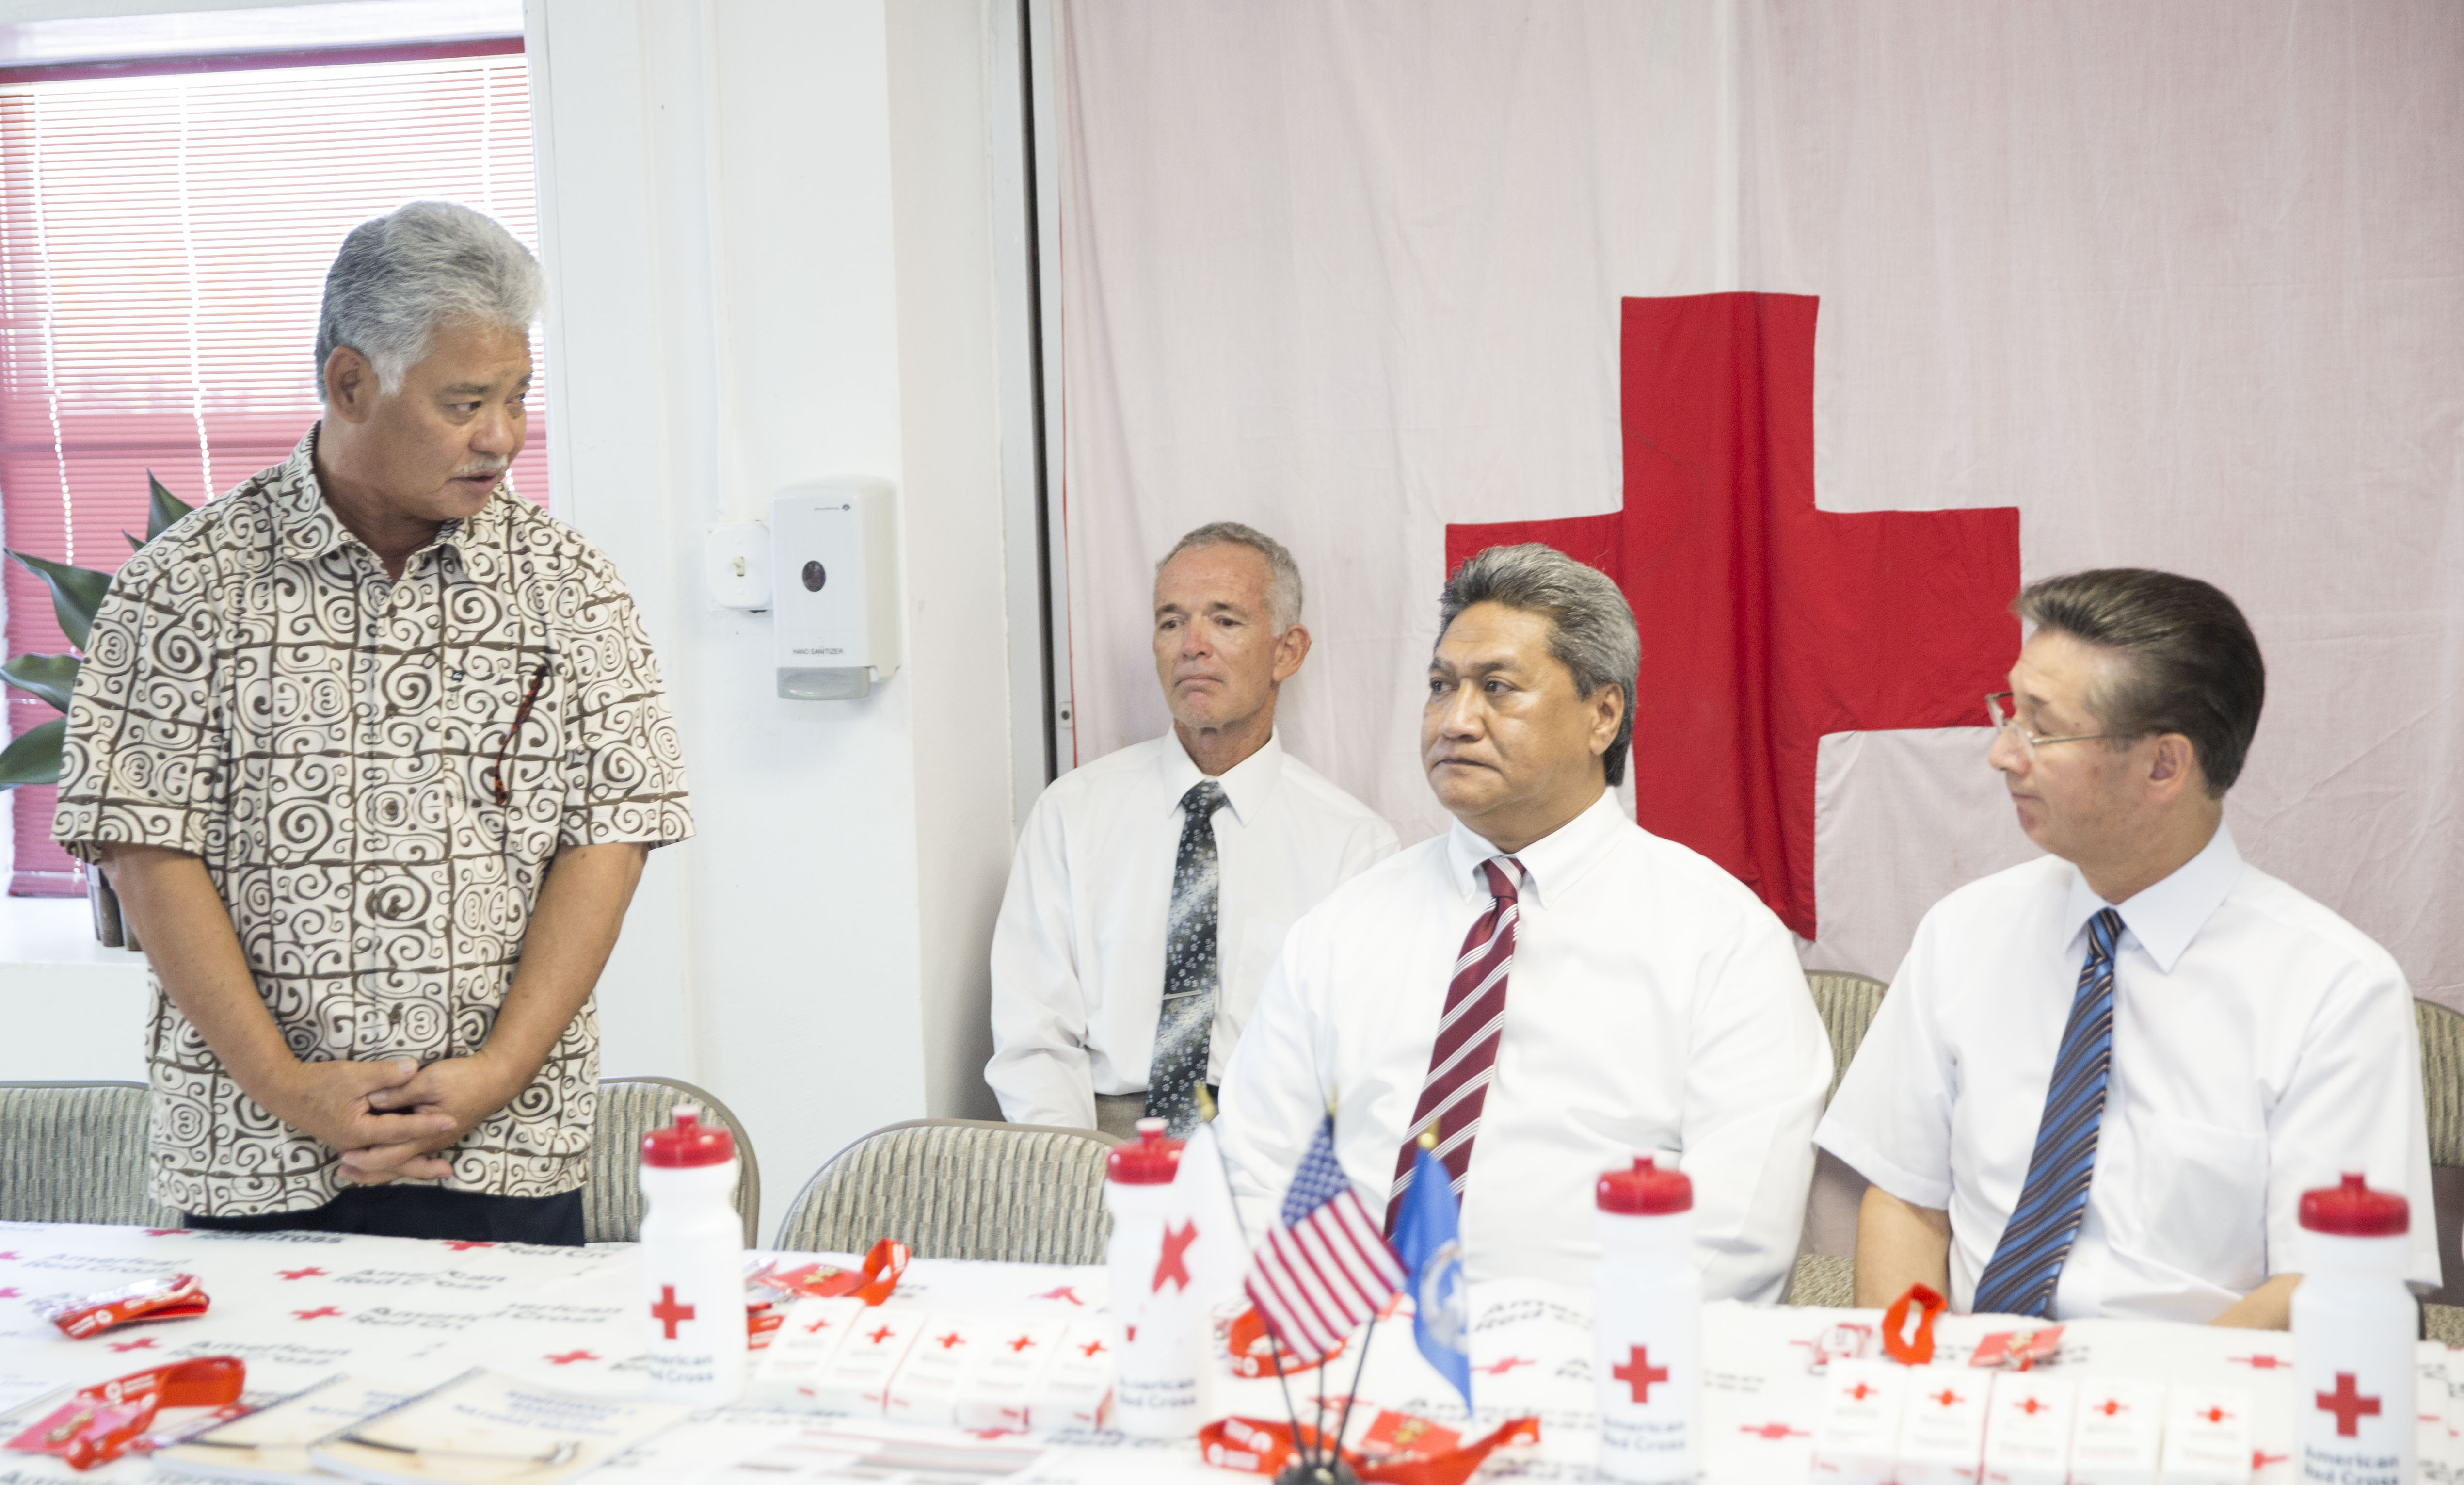 Church leaders and officials from the government and the Red Cross meet with the media to discuss typhoon relief efforts in Saipan, Northern Mariana Islands, Thursday, January 24, 2019. From left to right: Lt. Gov. Arnold Palacios; Valrick Welch, Saipan Ward bishop; Diego Sablan of the Barrigada Guam Stake presidency; and Elder Kazuhiko Yamashita, Asia North Area presidency.